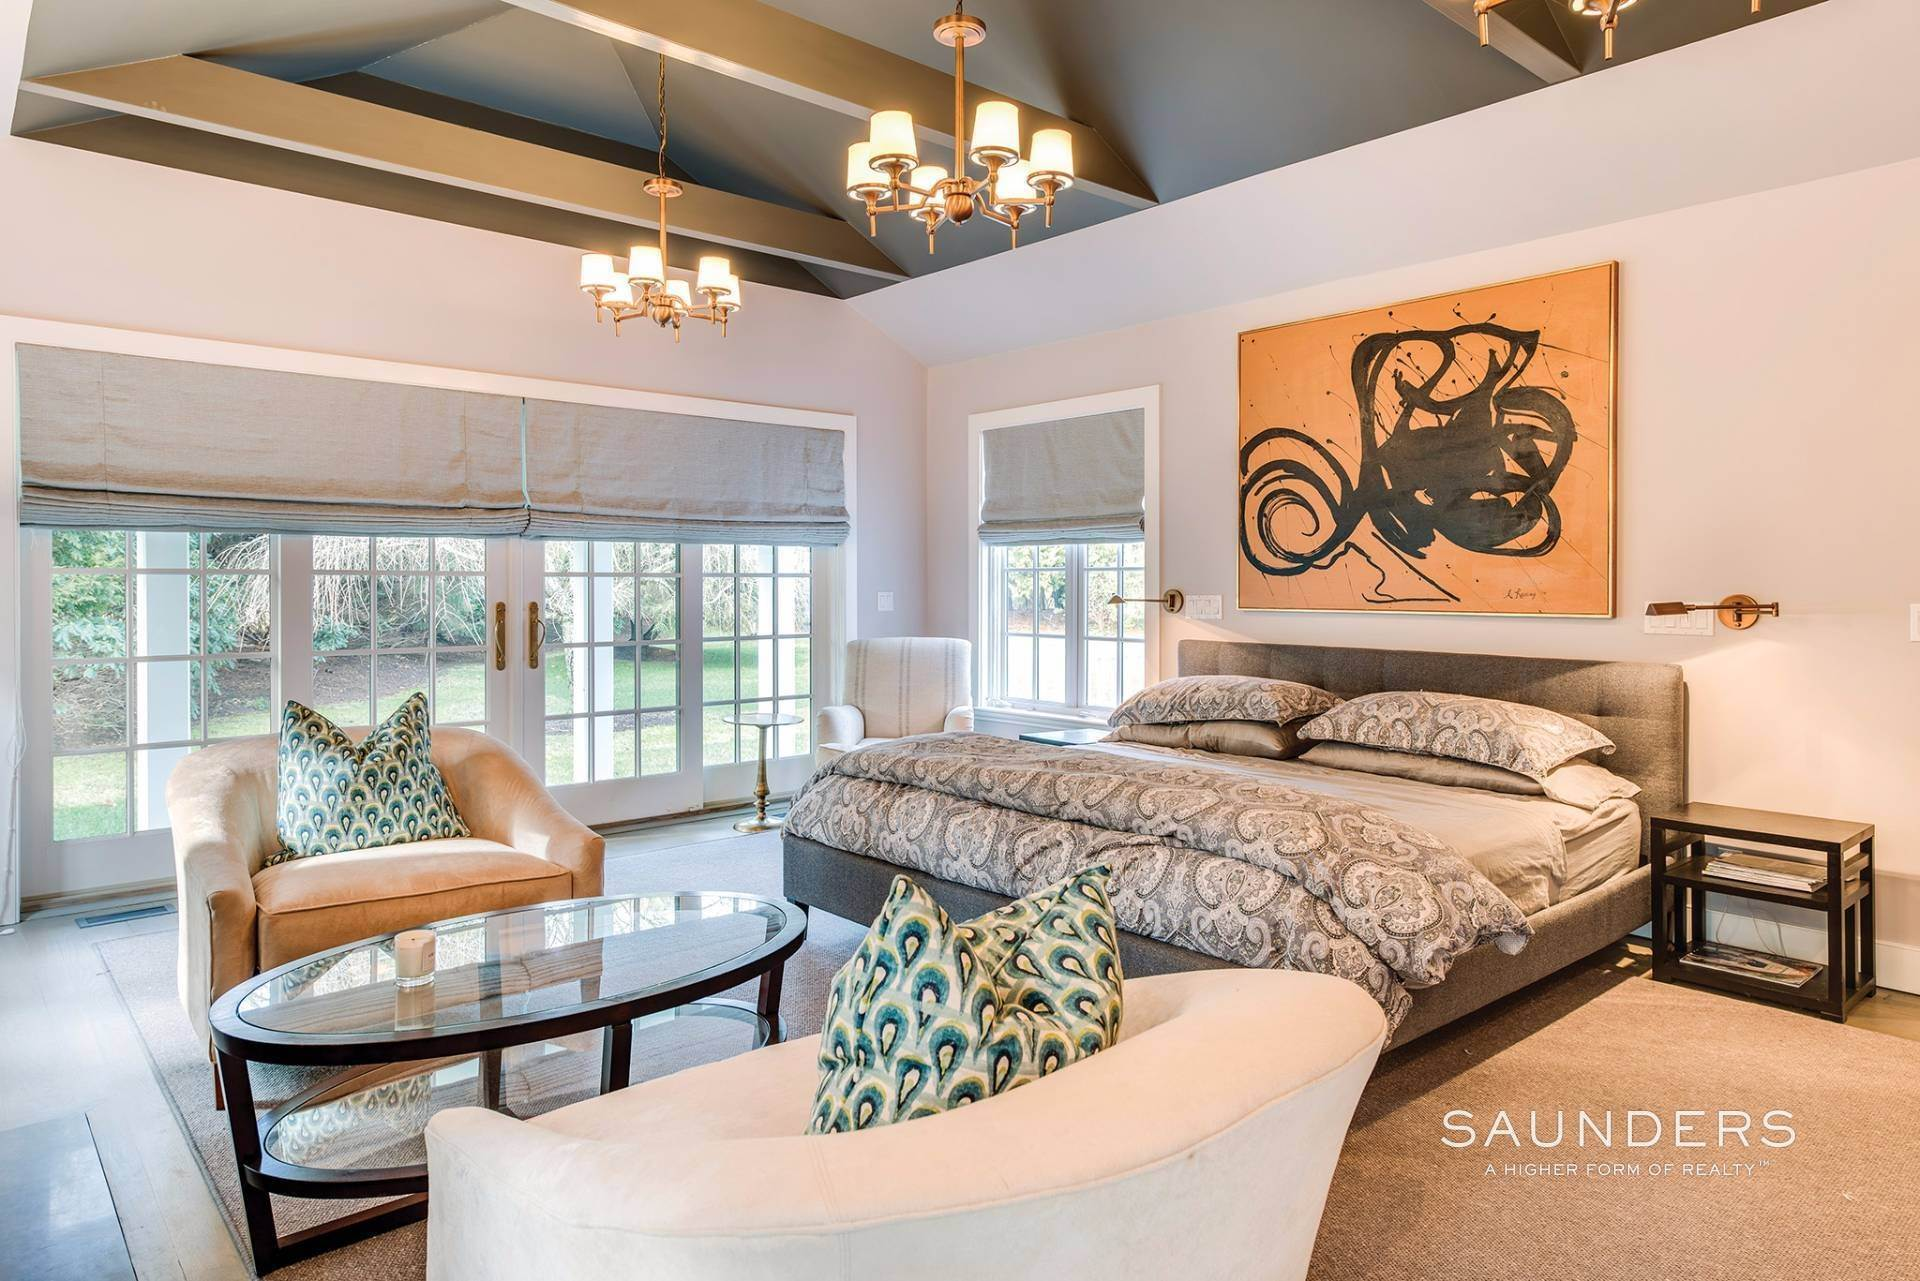 14. Single Family Homes for Sale at East Hampton Village 4 Carriage Court, East Hampton, East Hampton Town, NY 11937